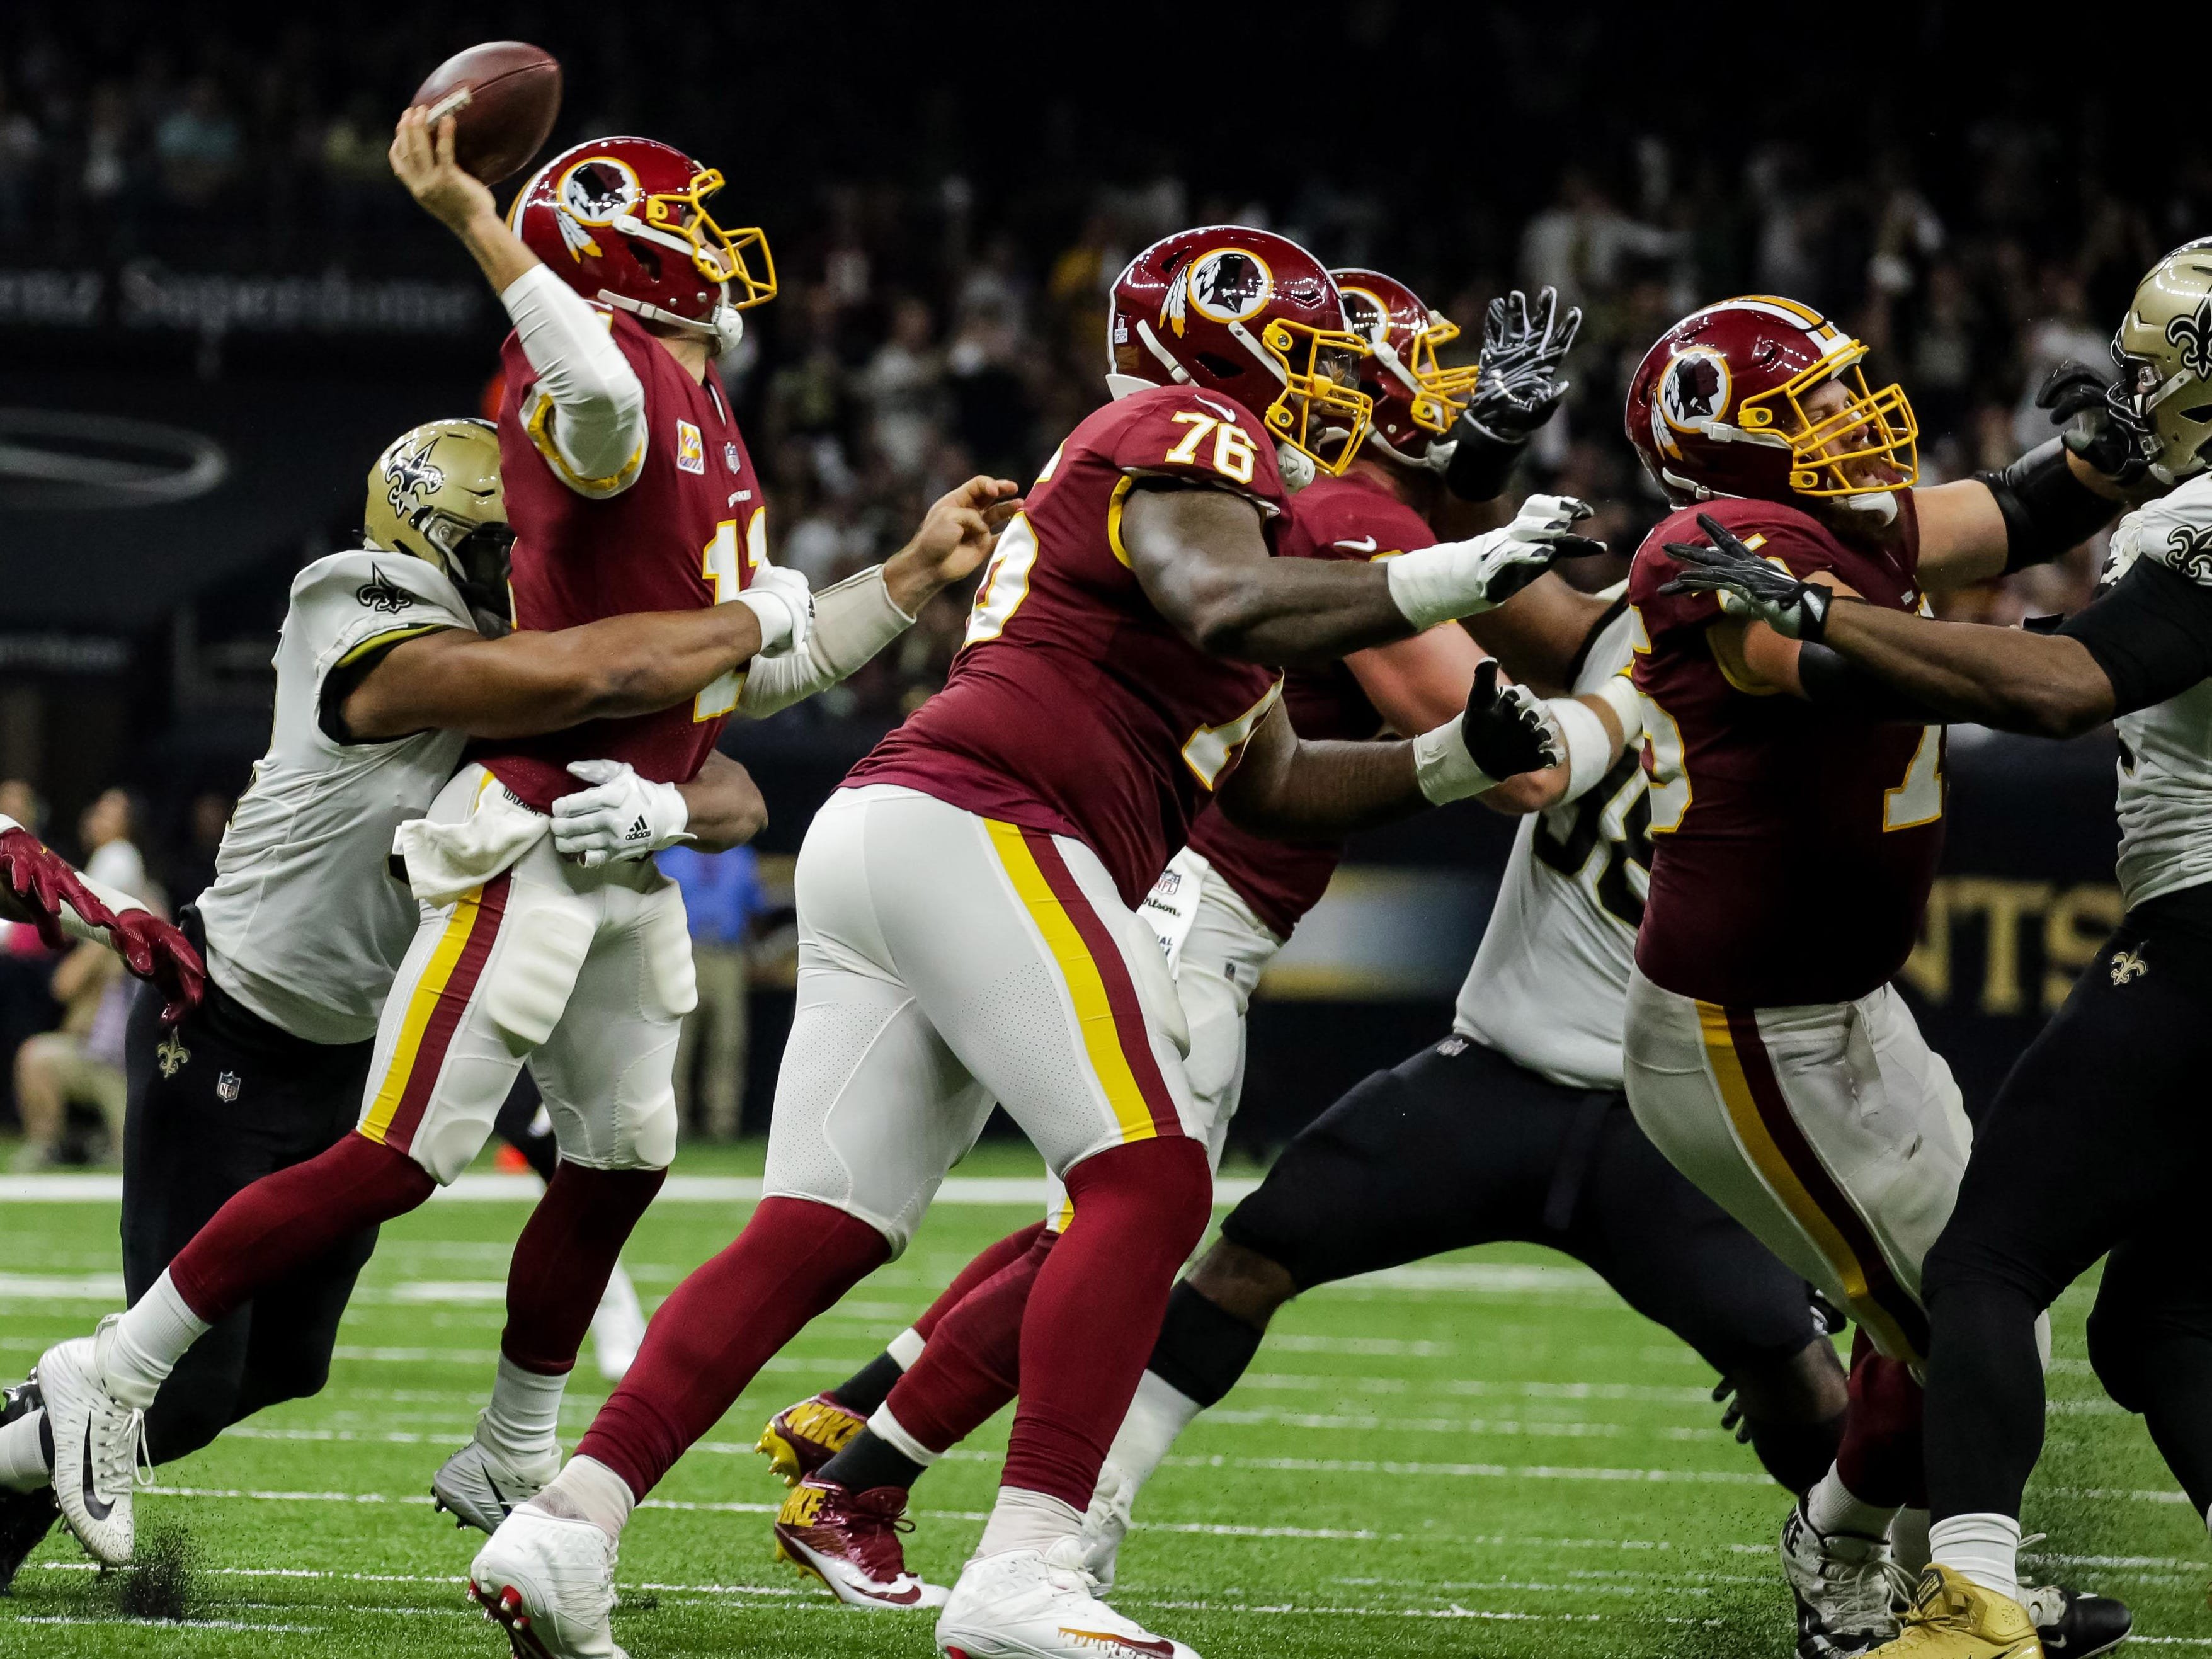 14. Redskins (10): They hadn't played in 15 days, and it showed Monday in New Orleans, where they got embarrassed. Still, 2-2 good enough for first in NFC East.